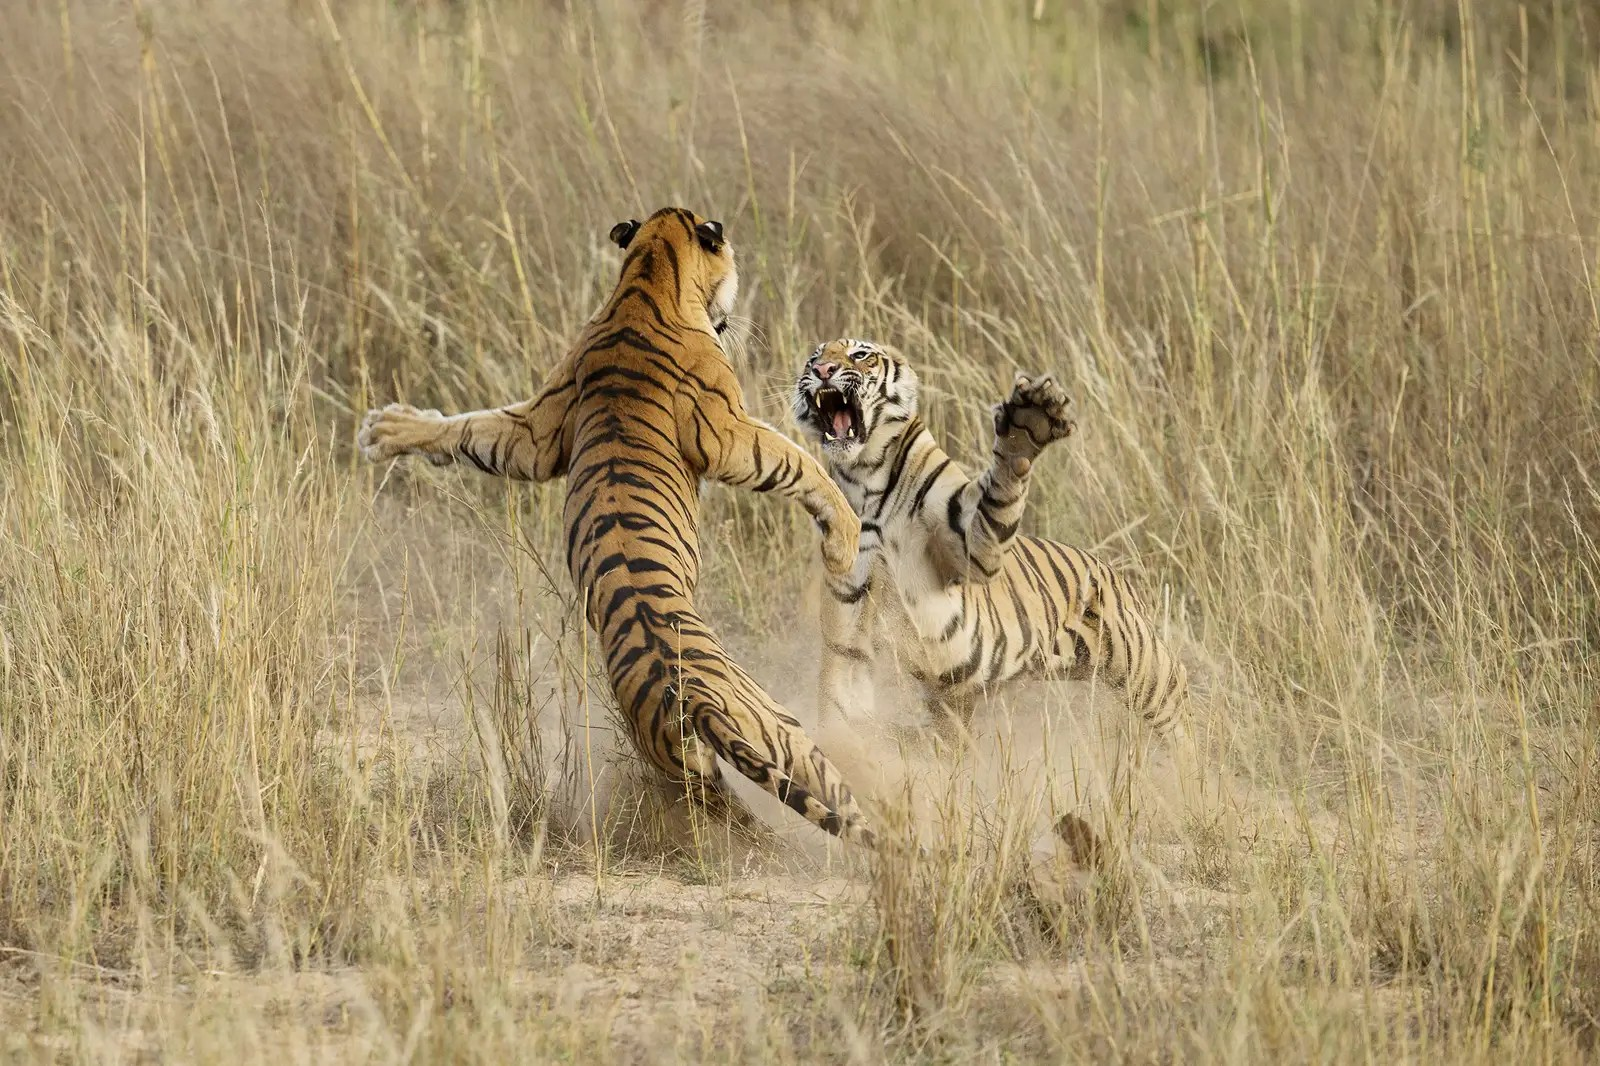 """This shot, """"Muscle Power,"""" by Archna Singh, shot in the Bandhavgarh National Park in Madhya Pradesh, India, was an honorable mention in the 2014 National Geographic Photo Contest."""